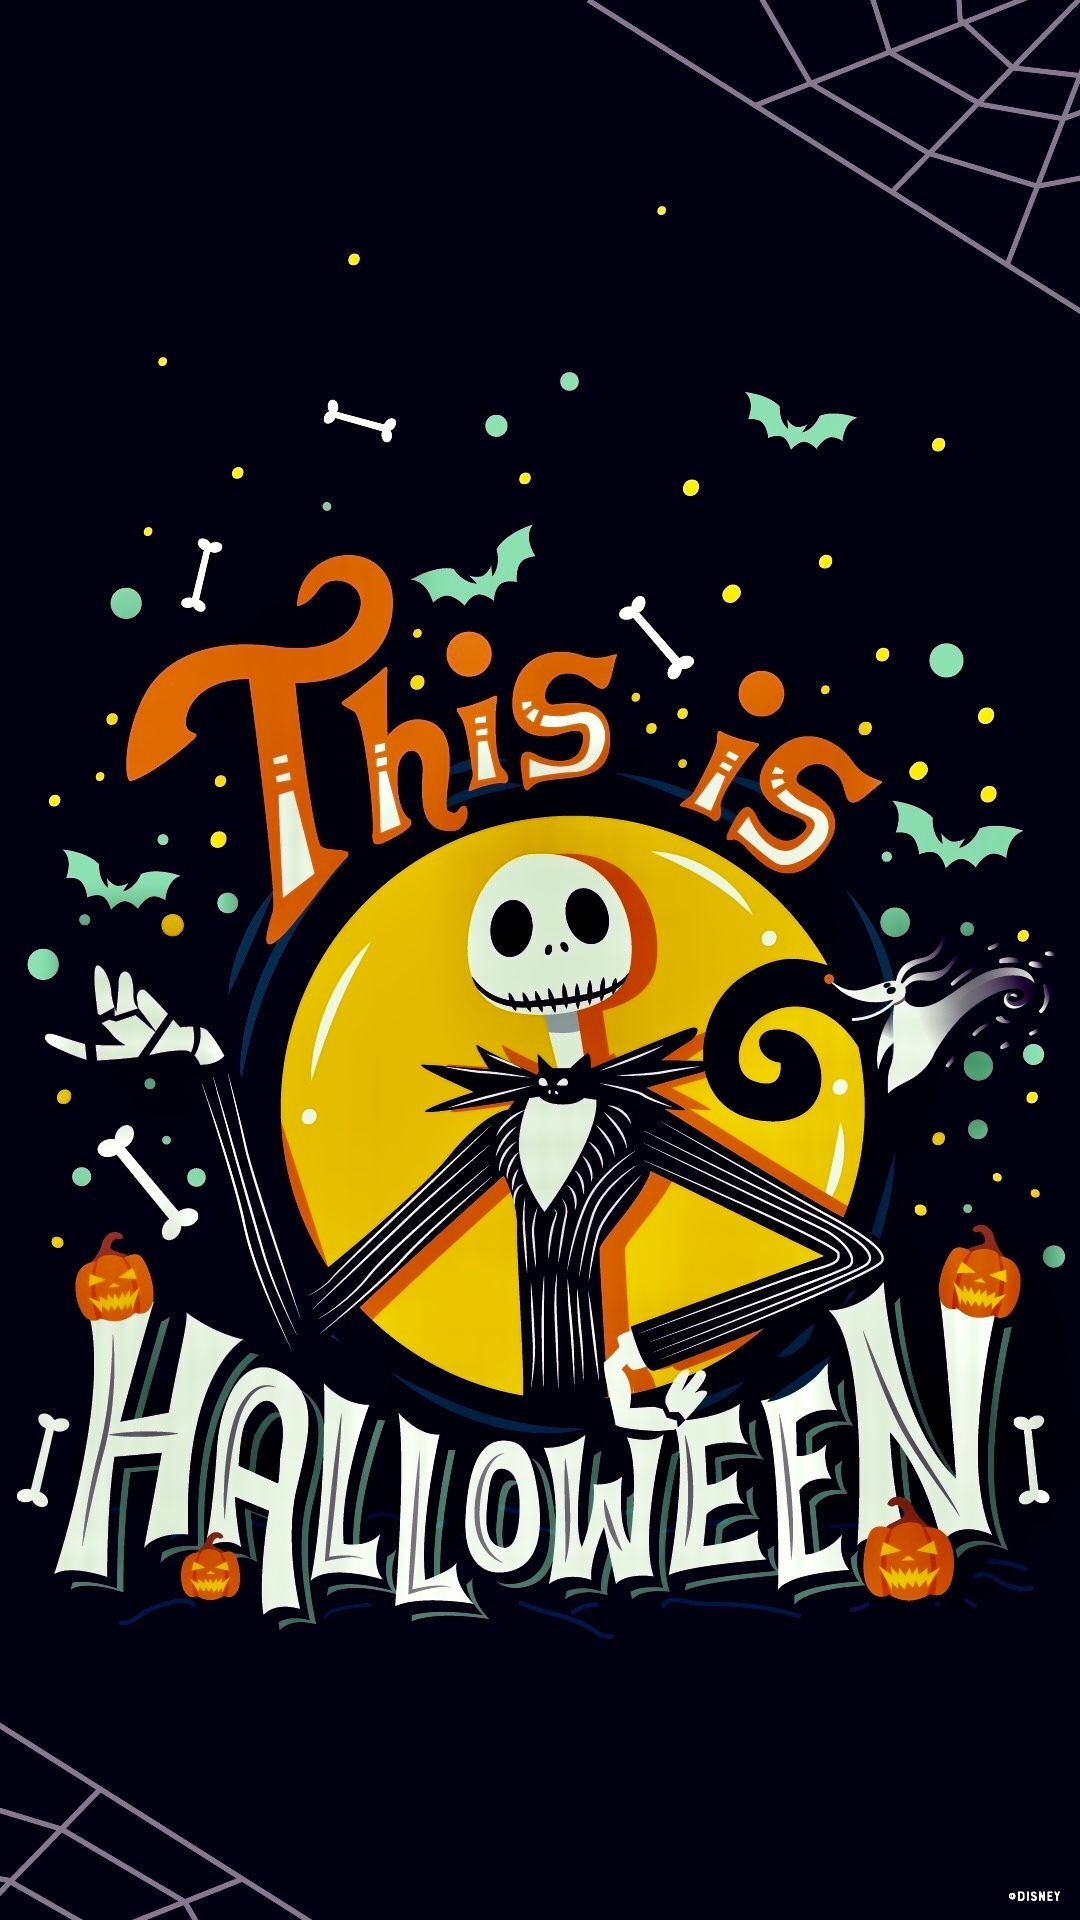 Pin By Audrey Melski On Disney Love Nightmare Before Christmas Wallpaper Halloween Wallpaper Nightmare Before Christmas